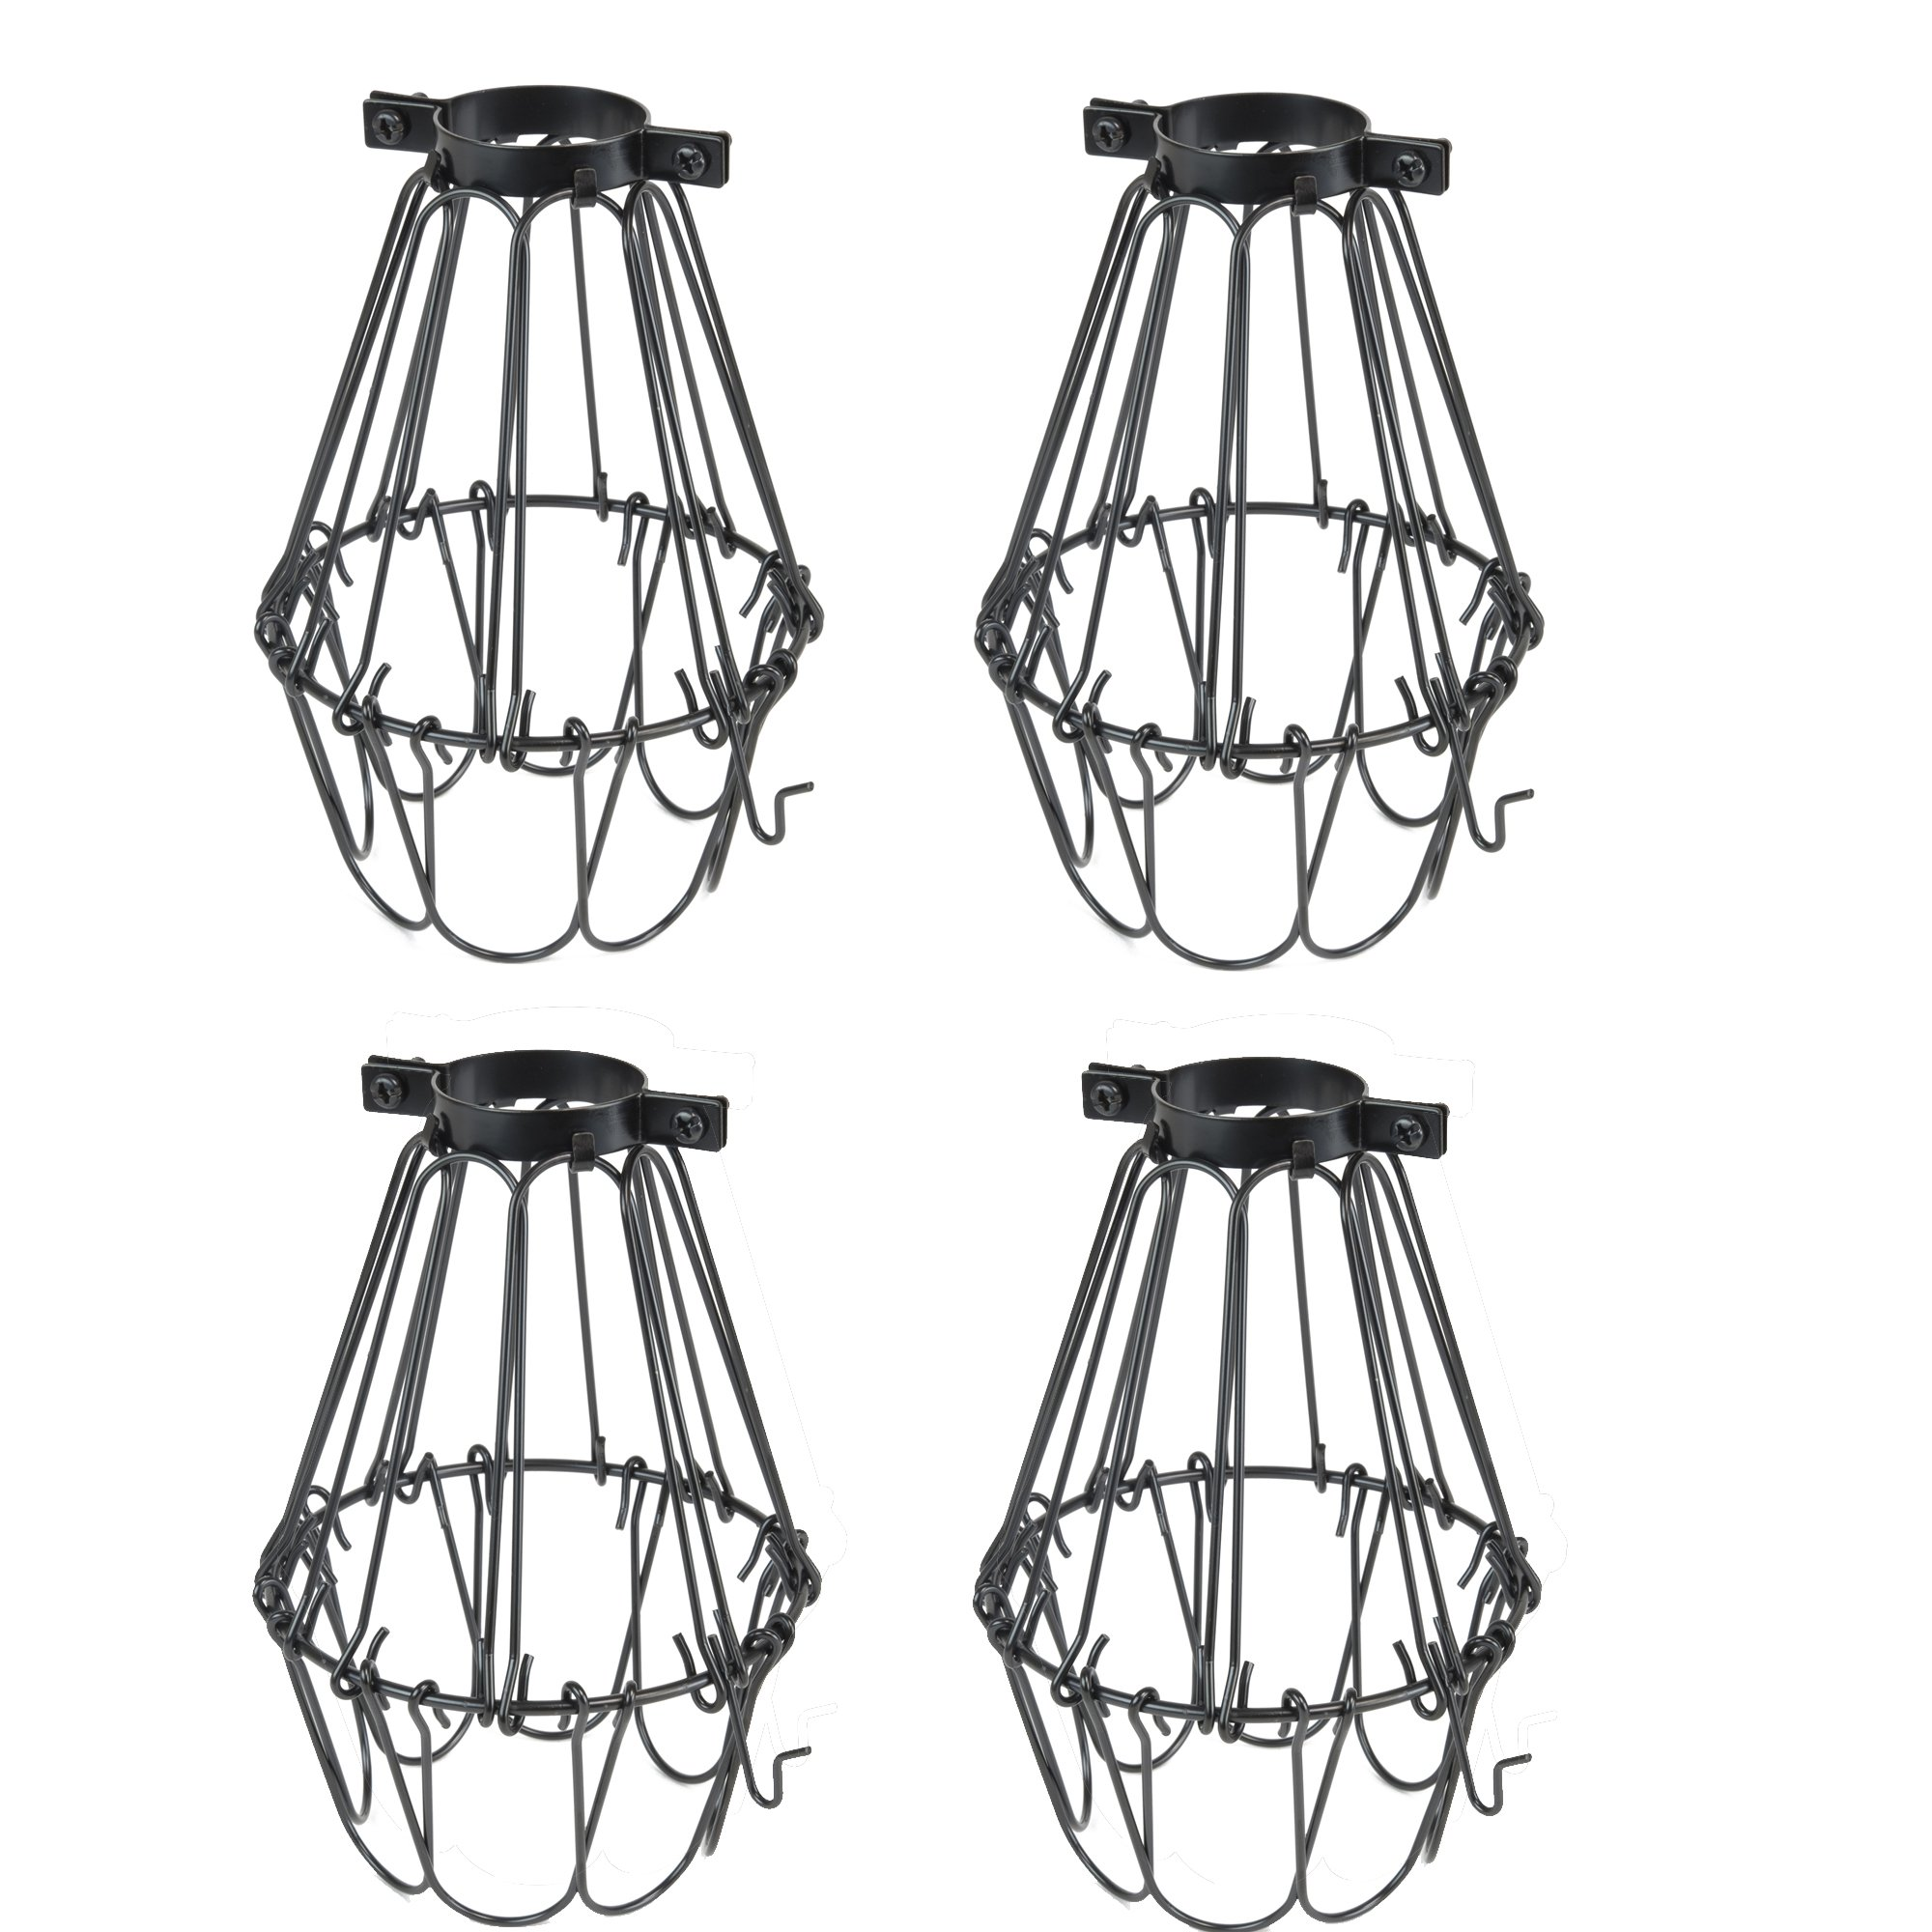 Cheap Cage Light Fixture Find Deals On Line At Adjustable Fluorescent Lighting Fixtures Wiring In Series Get Quotations Set Of 4 Industrial Vintage Style Black Hanging Pendant Metal Wire Lamp